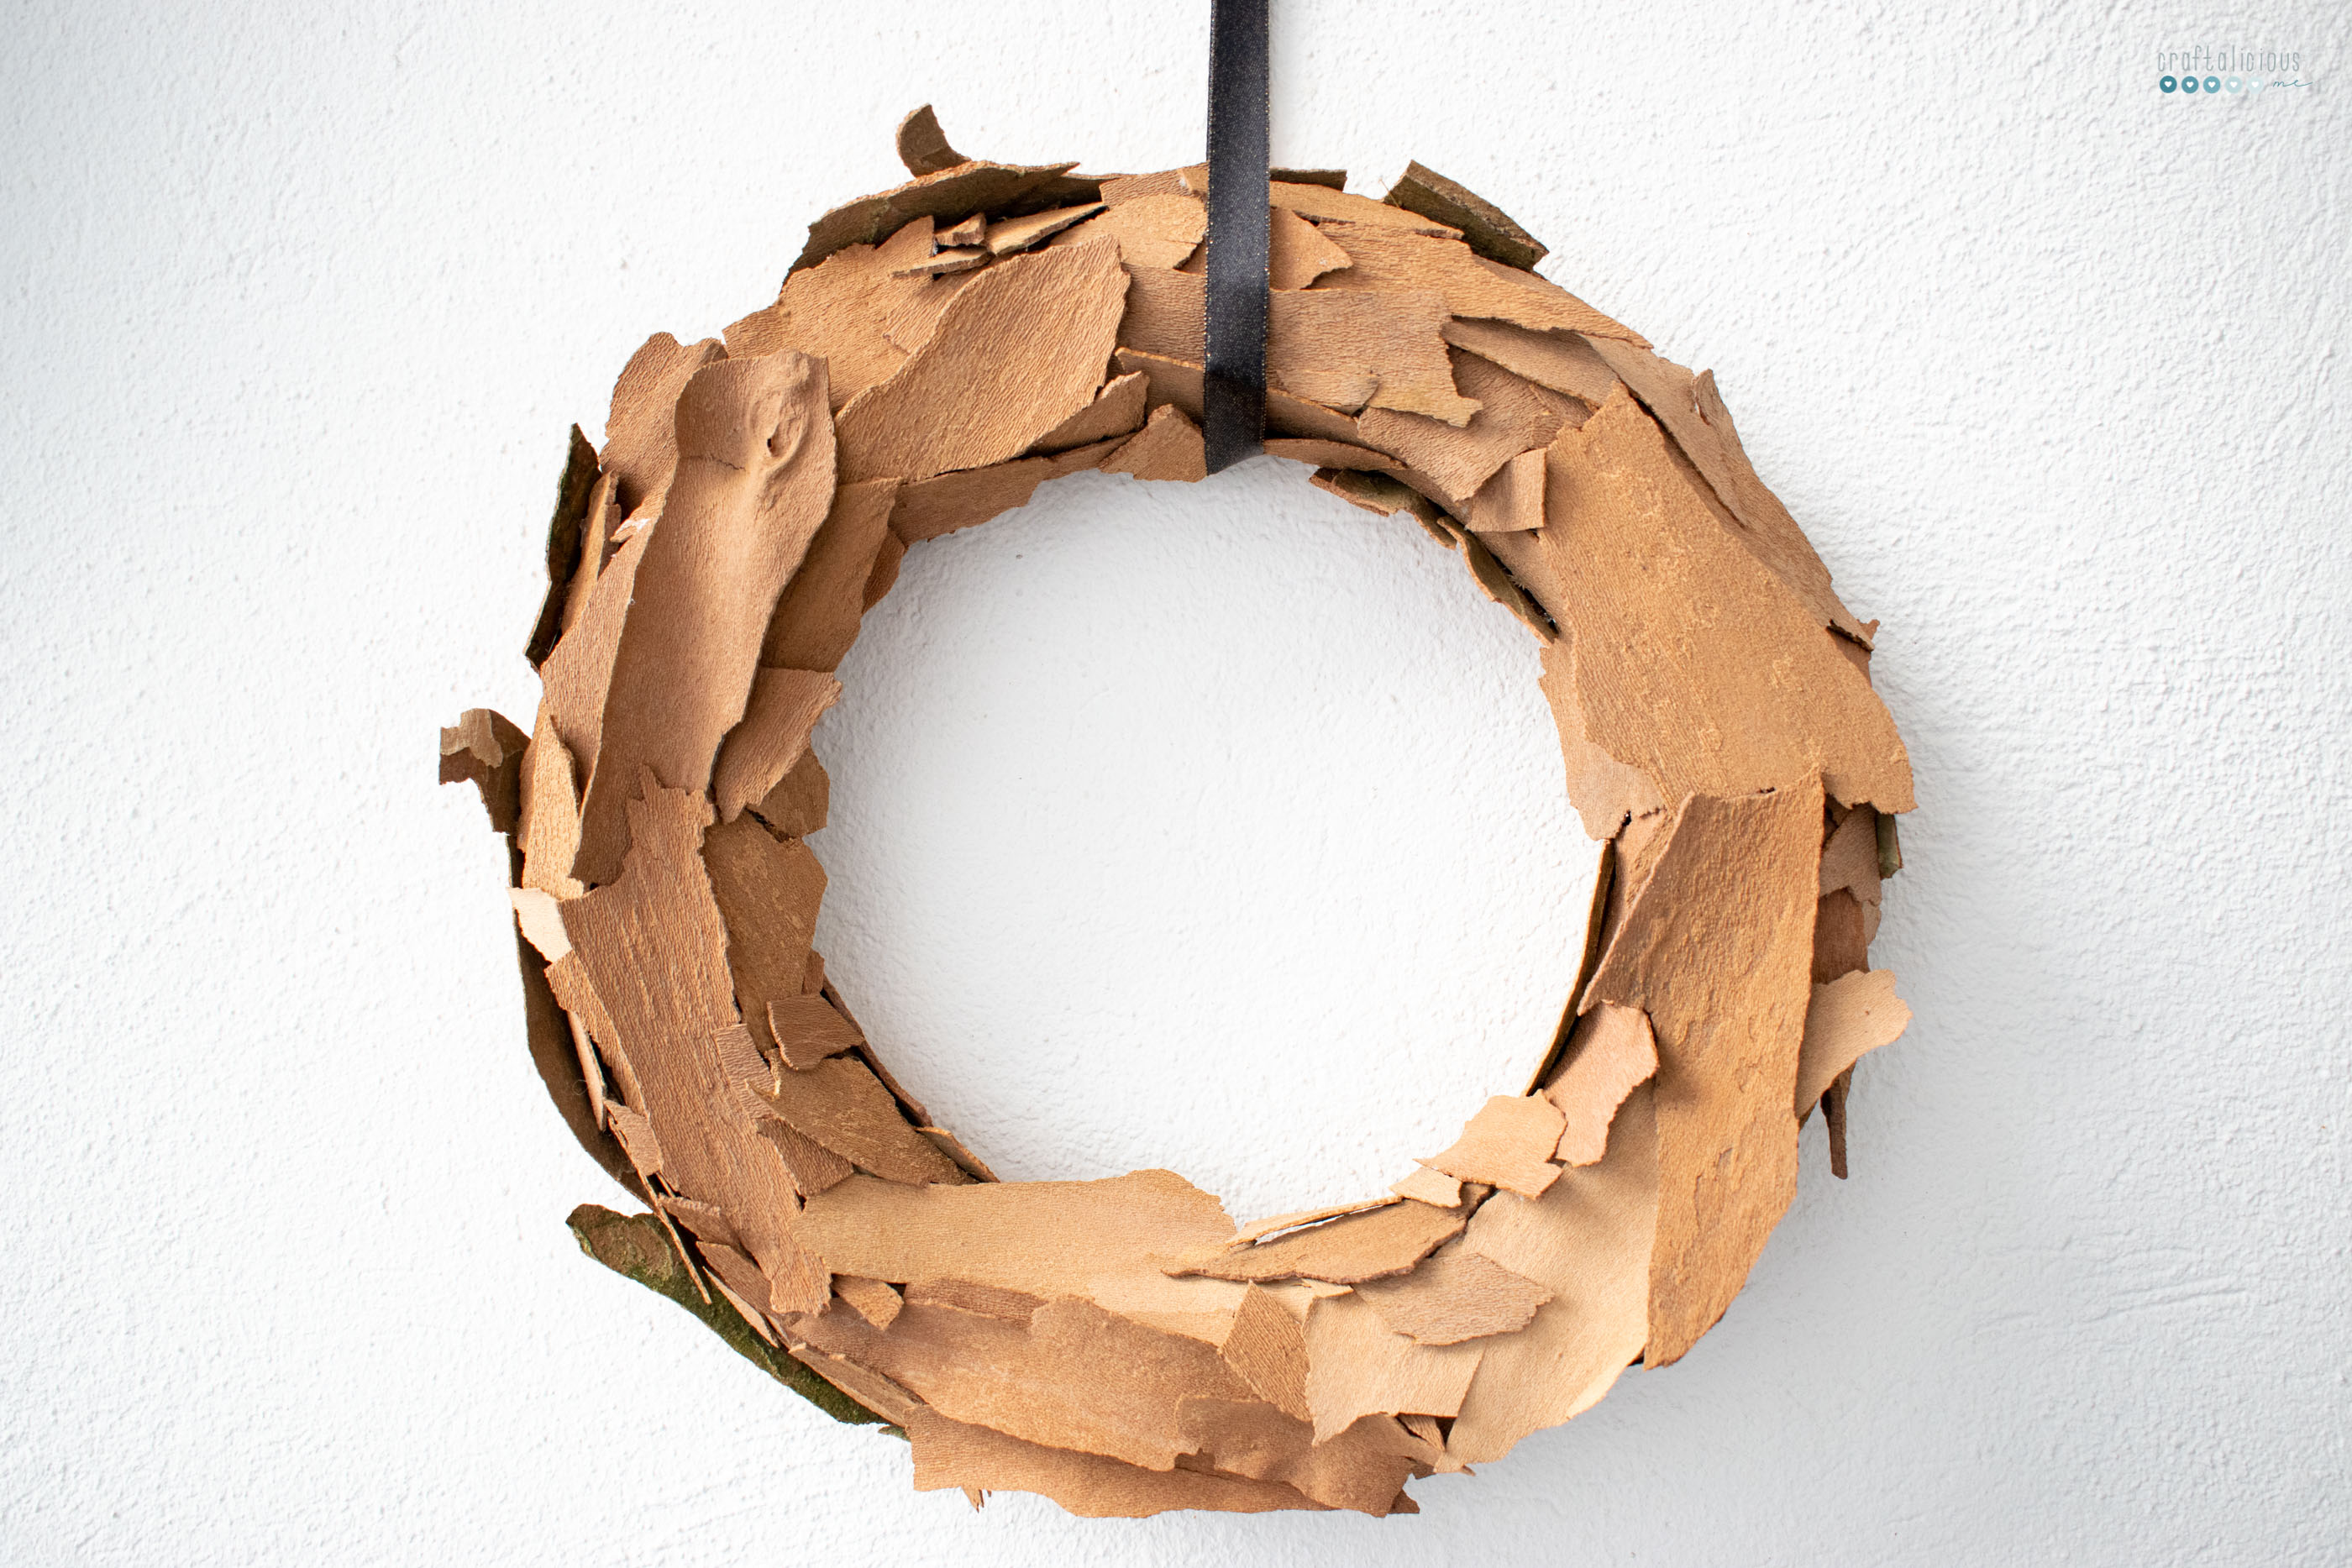 Bark Wreath seeking creative life